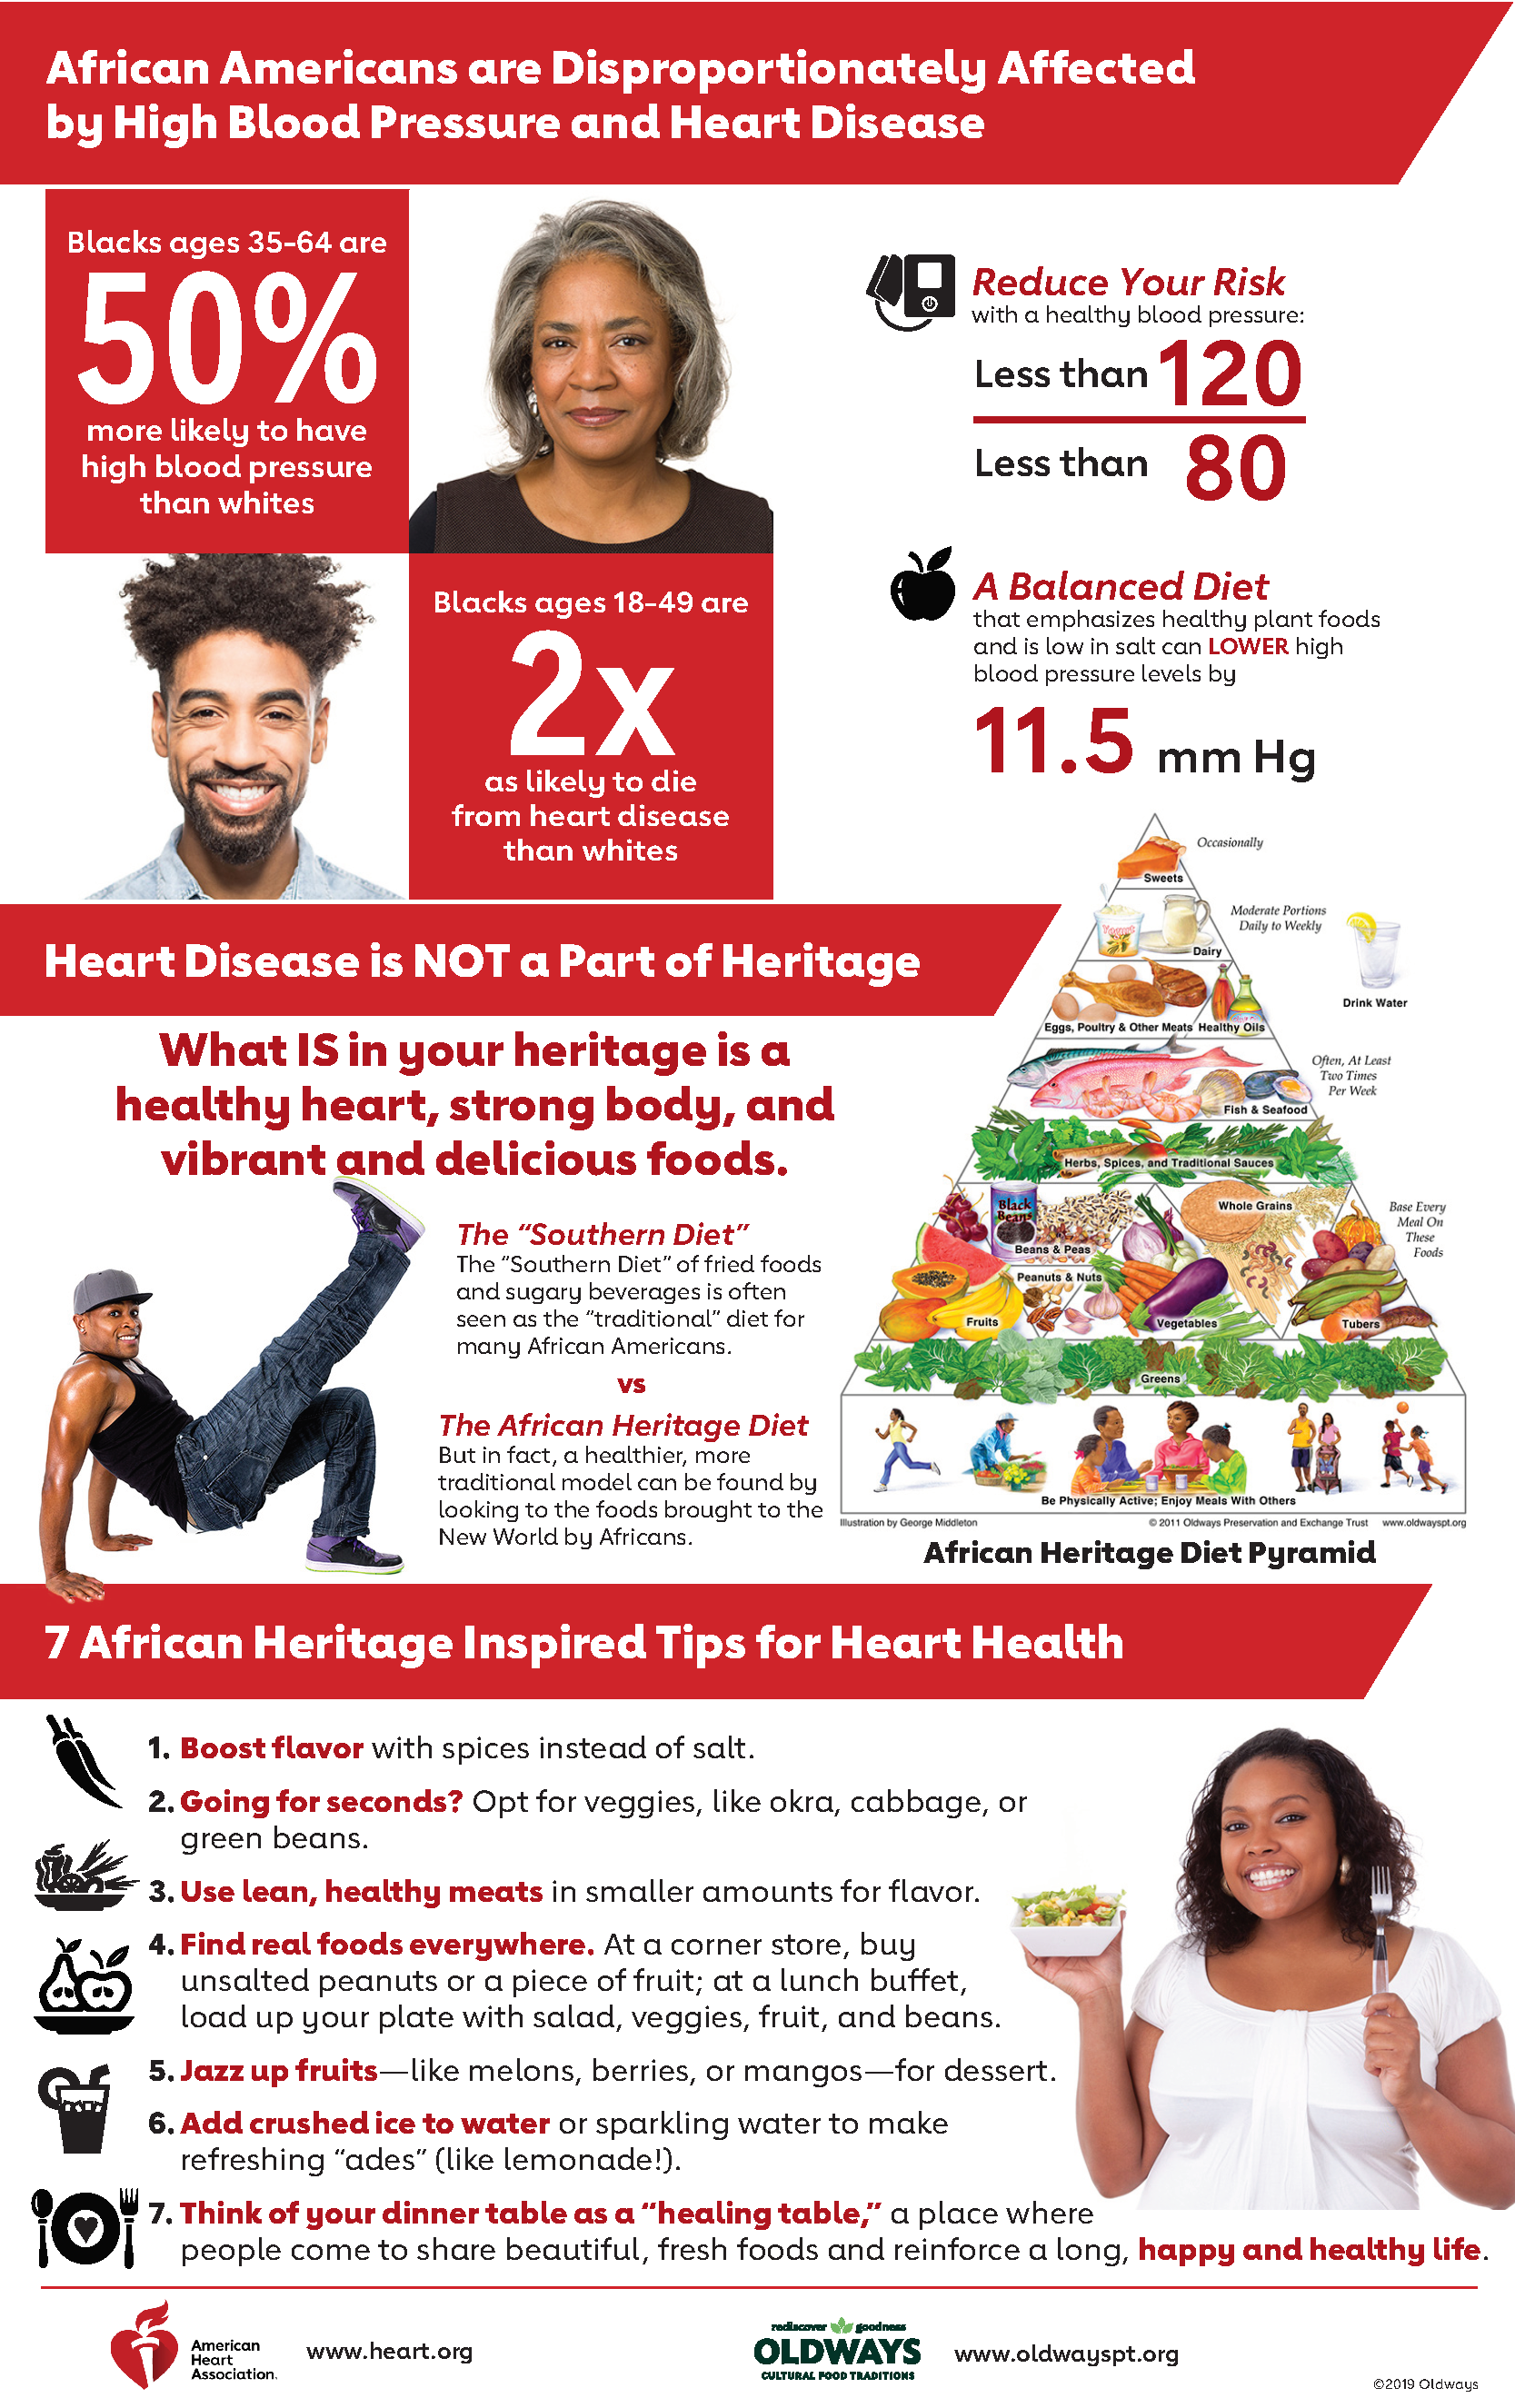 7 African Heritage Inspired Tips for Heart Health